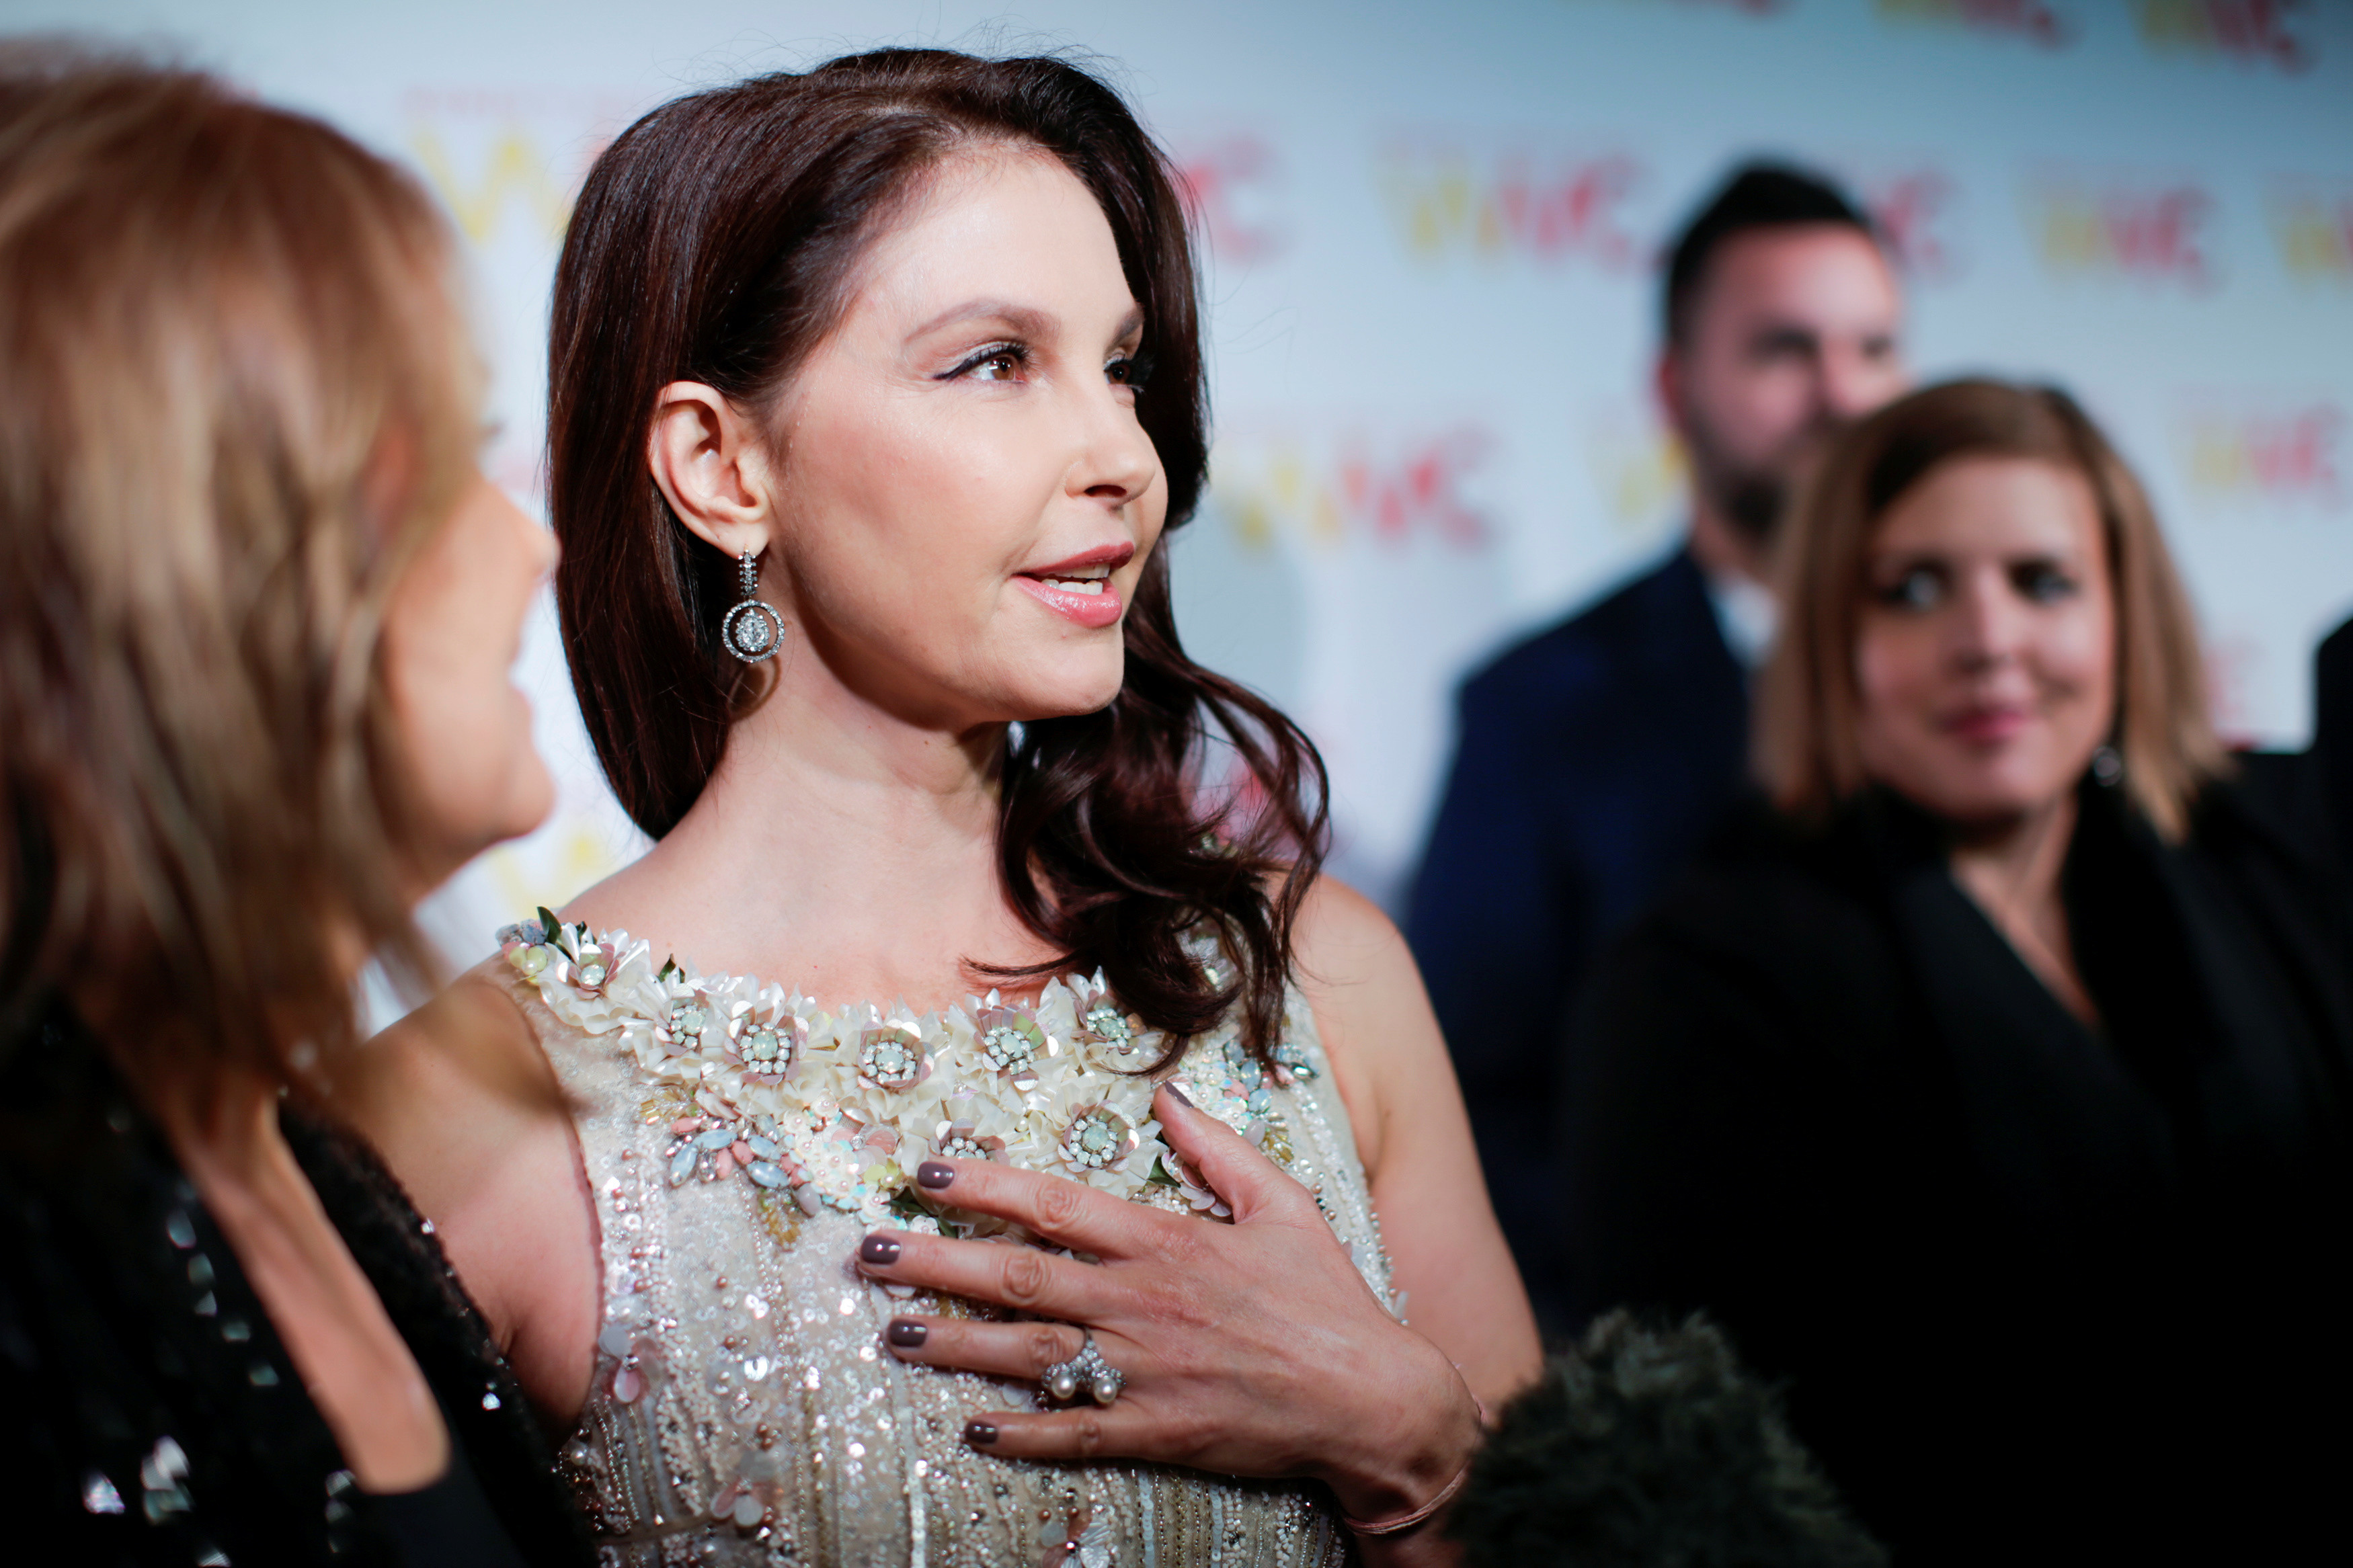 Ashley Judd was one of the first to accused the Hollywood mogul Harvey Weinstein of sexual harassment.